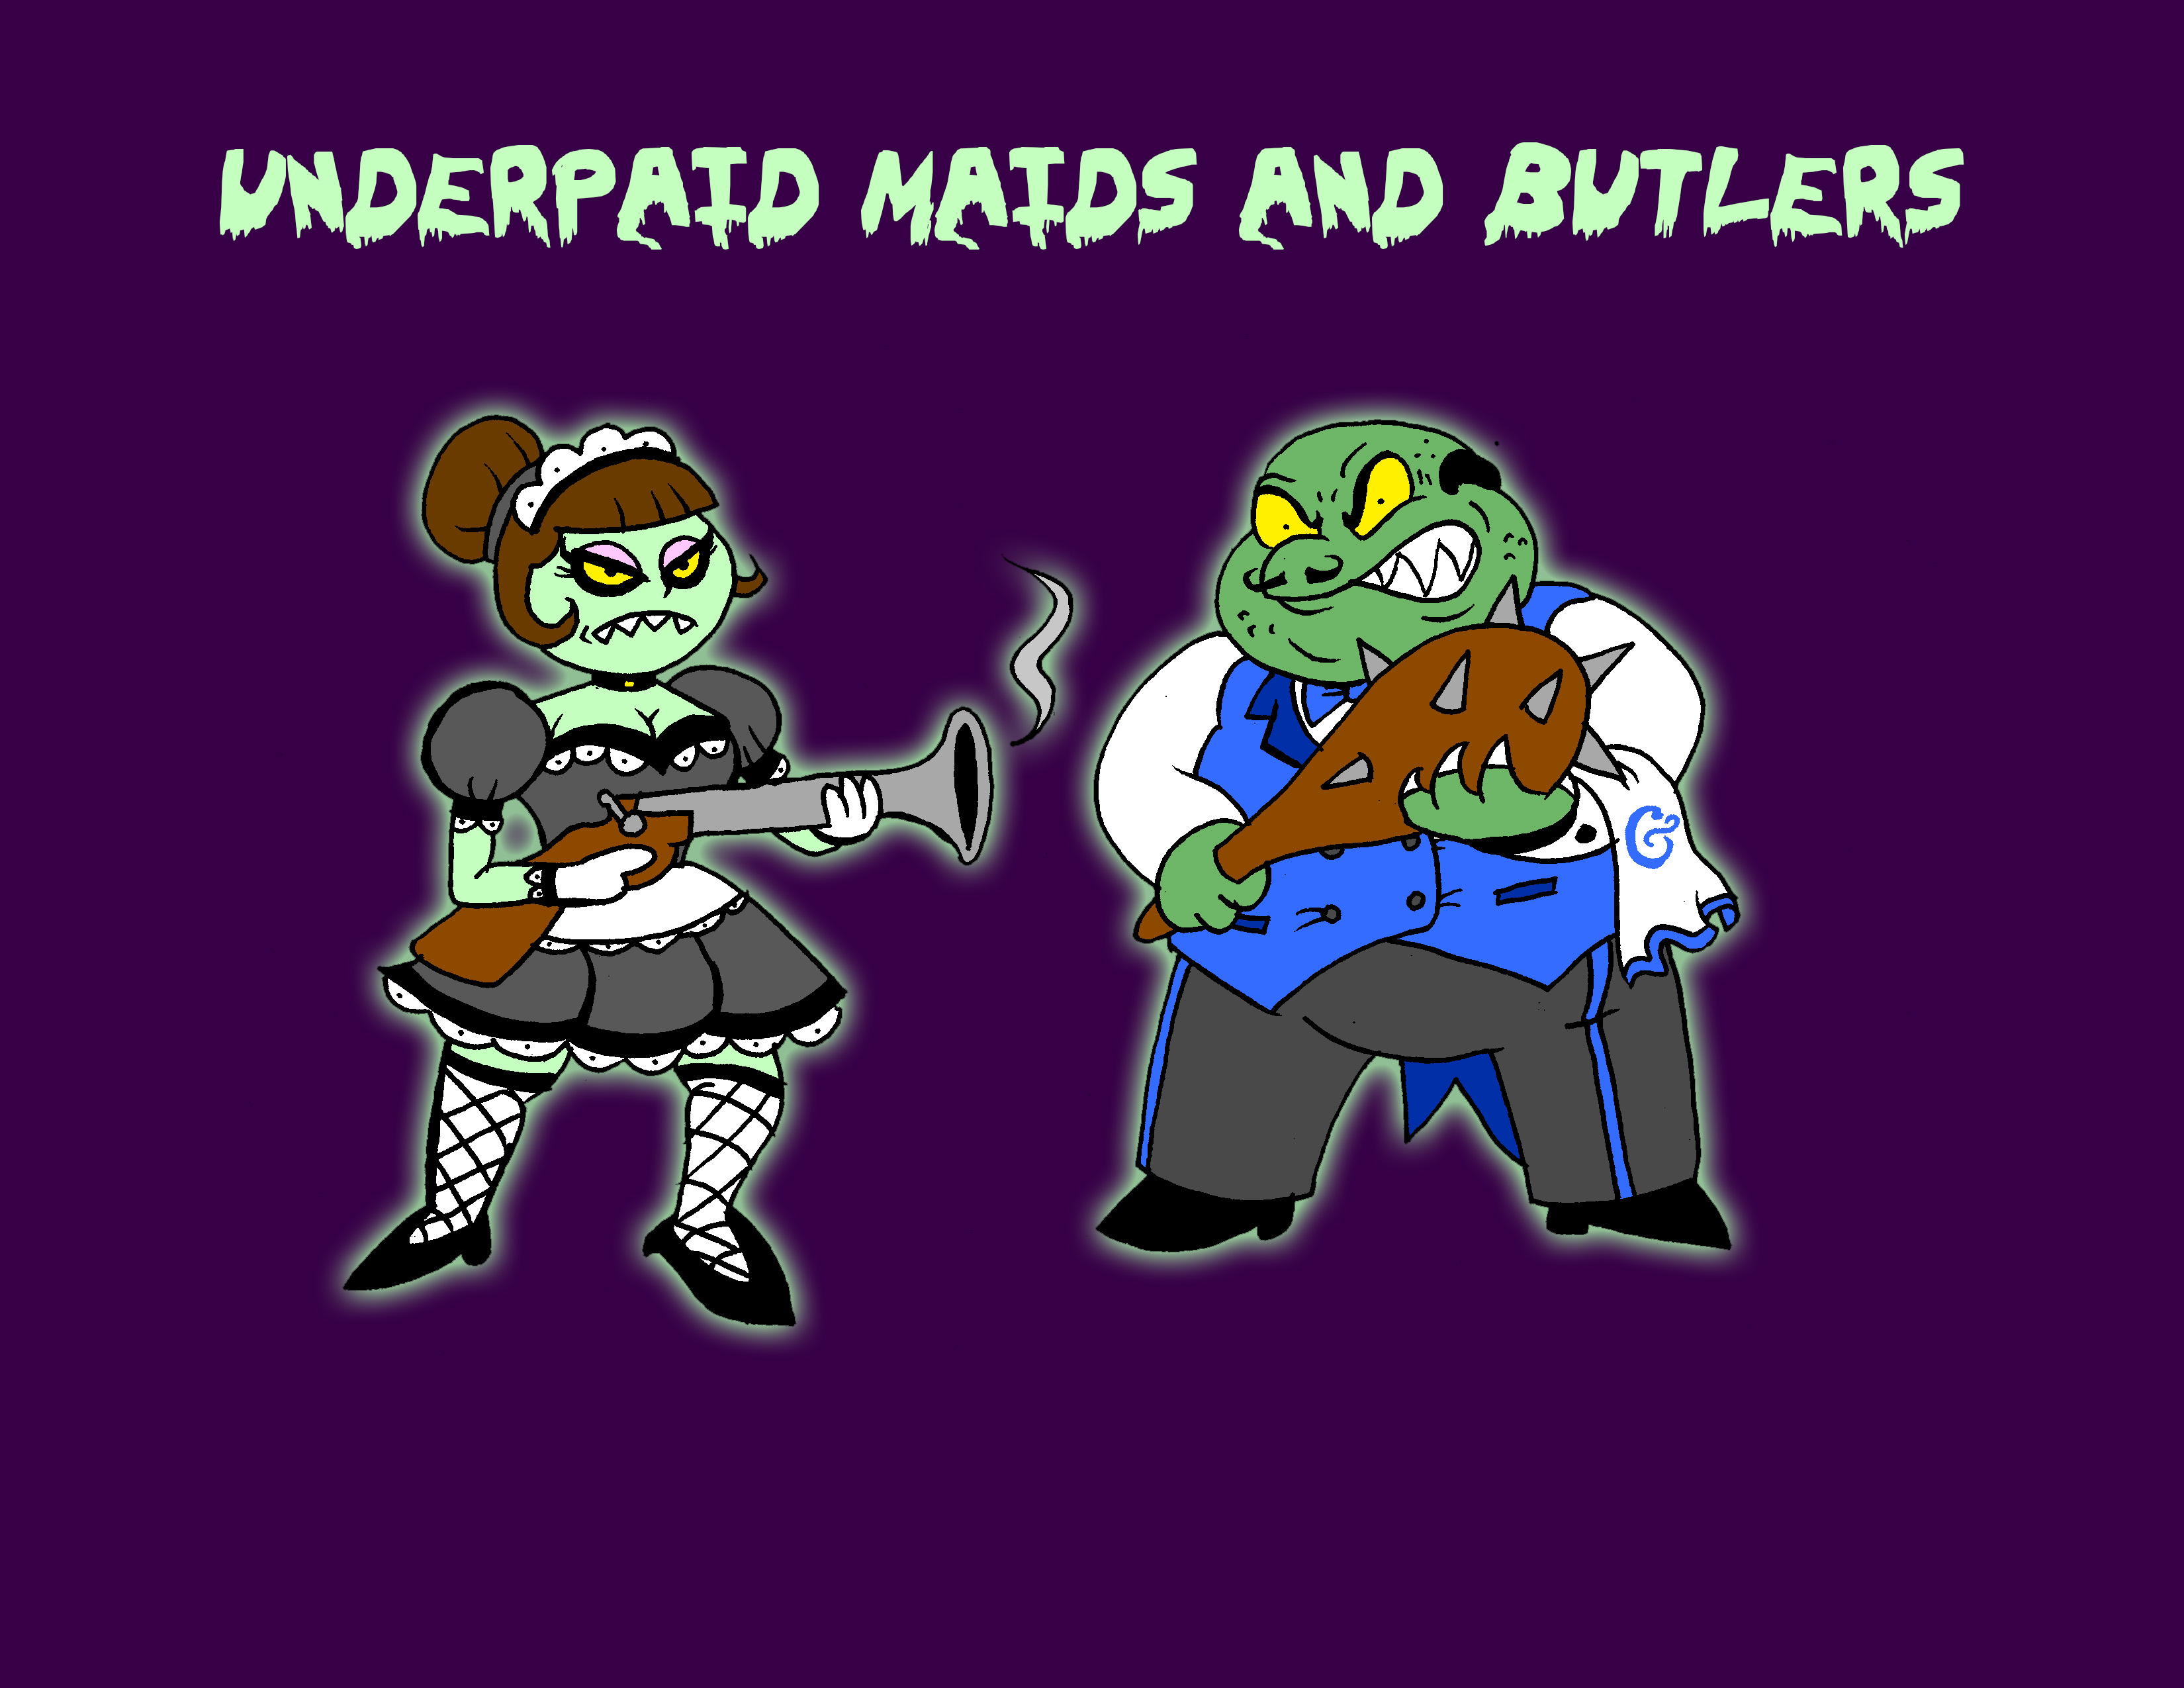 Underpaid Maids and Butlers Concept art